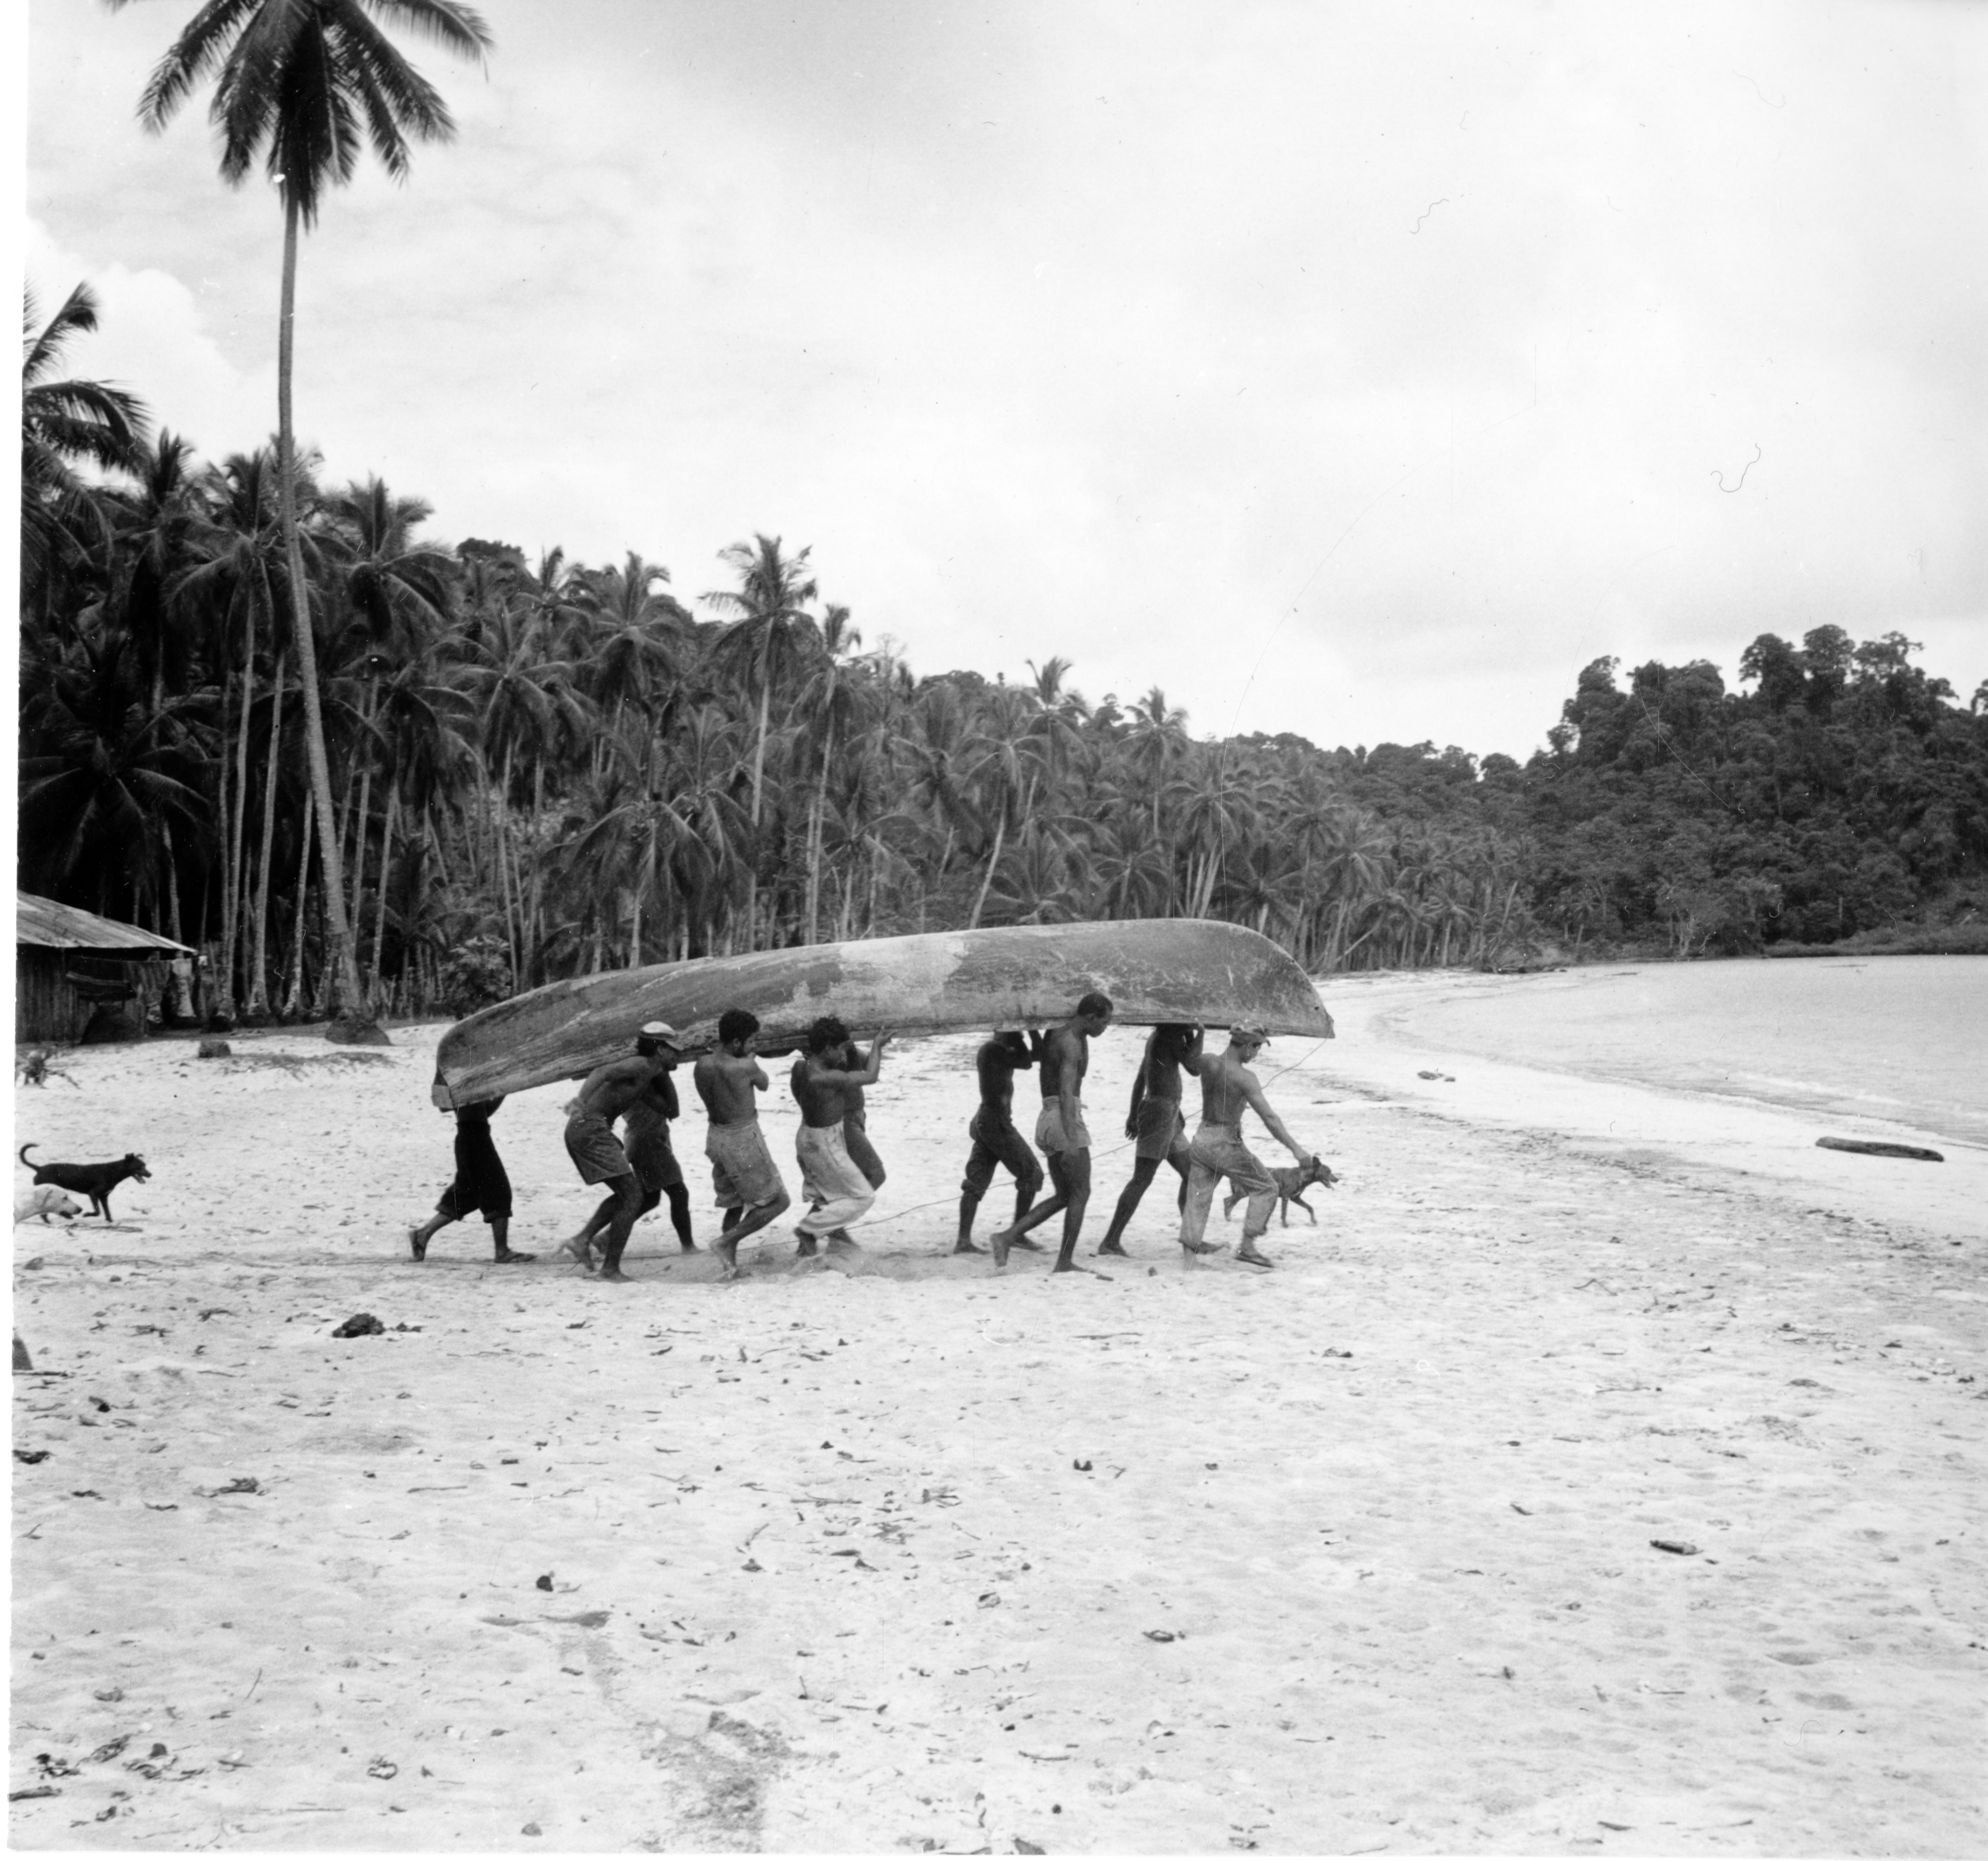 Black and white image of people carrying boat on a beach.